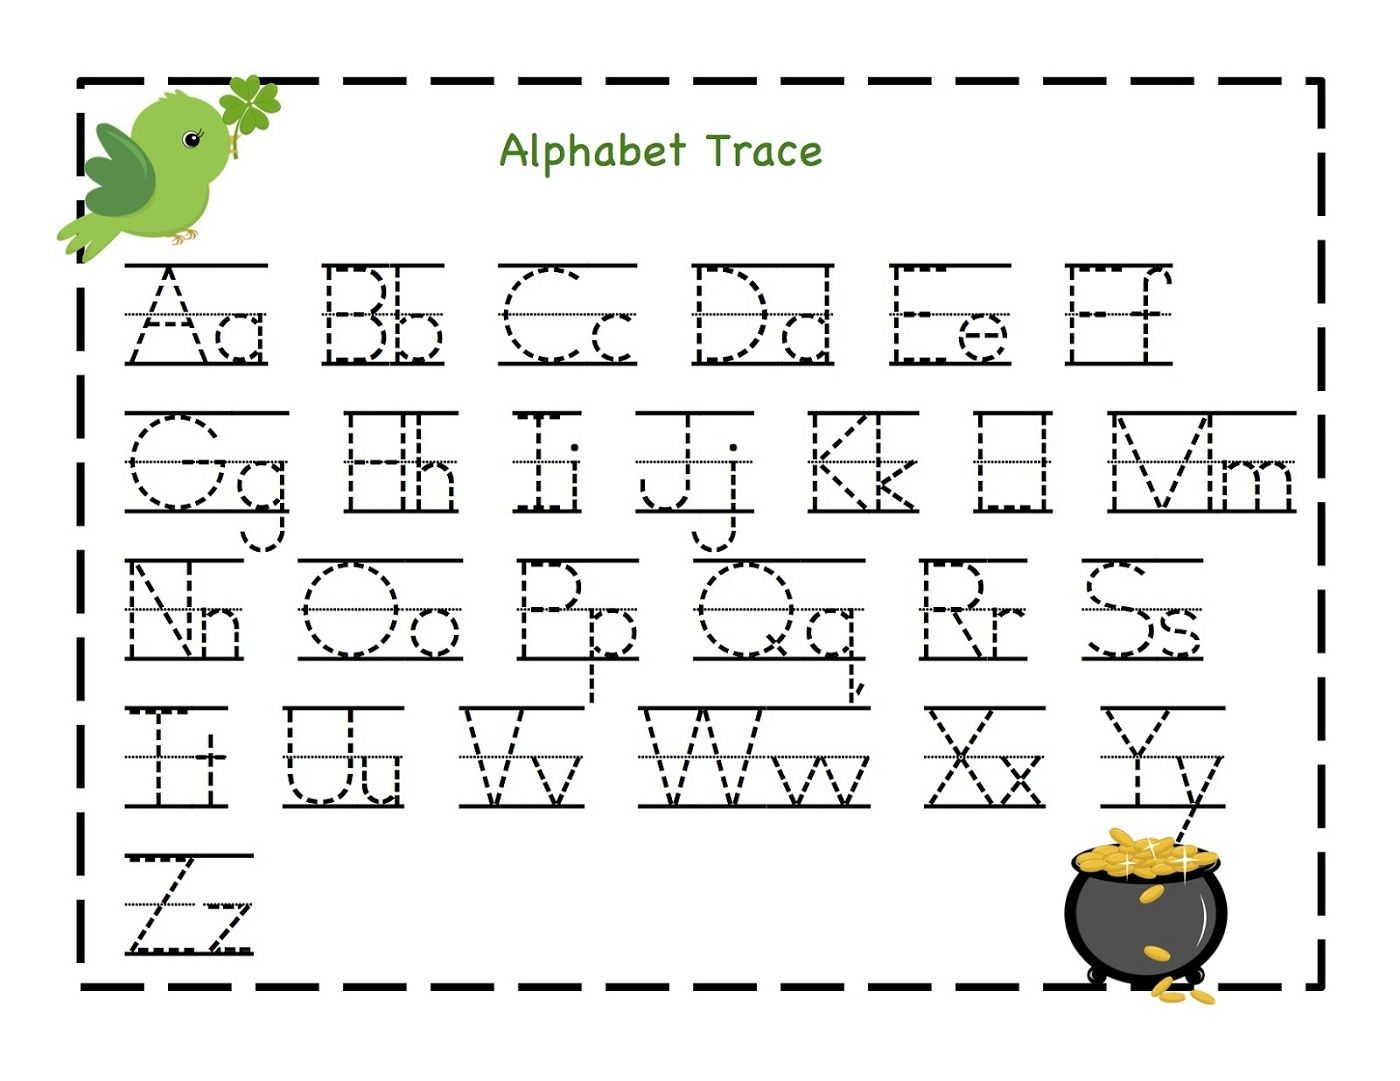 Worksheets Tracing The Alphabet Worksheets For Kindergarten kindergarten alphabet worksheets printable activity shelter shelter